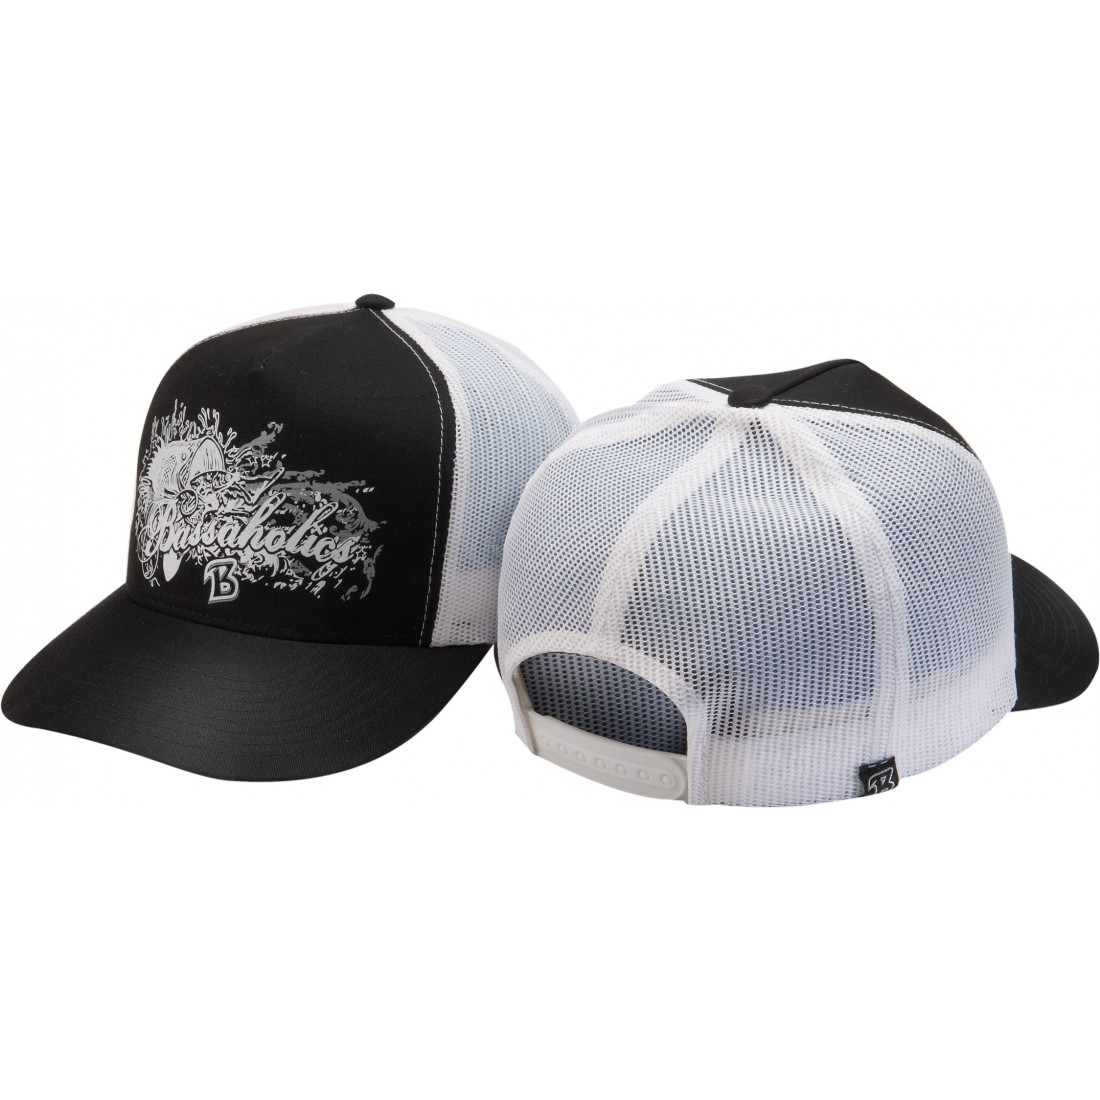 Transcript mens trucker hat Black & White